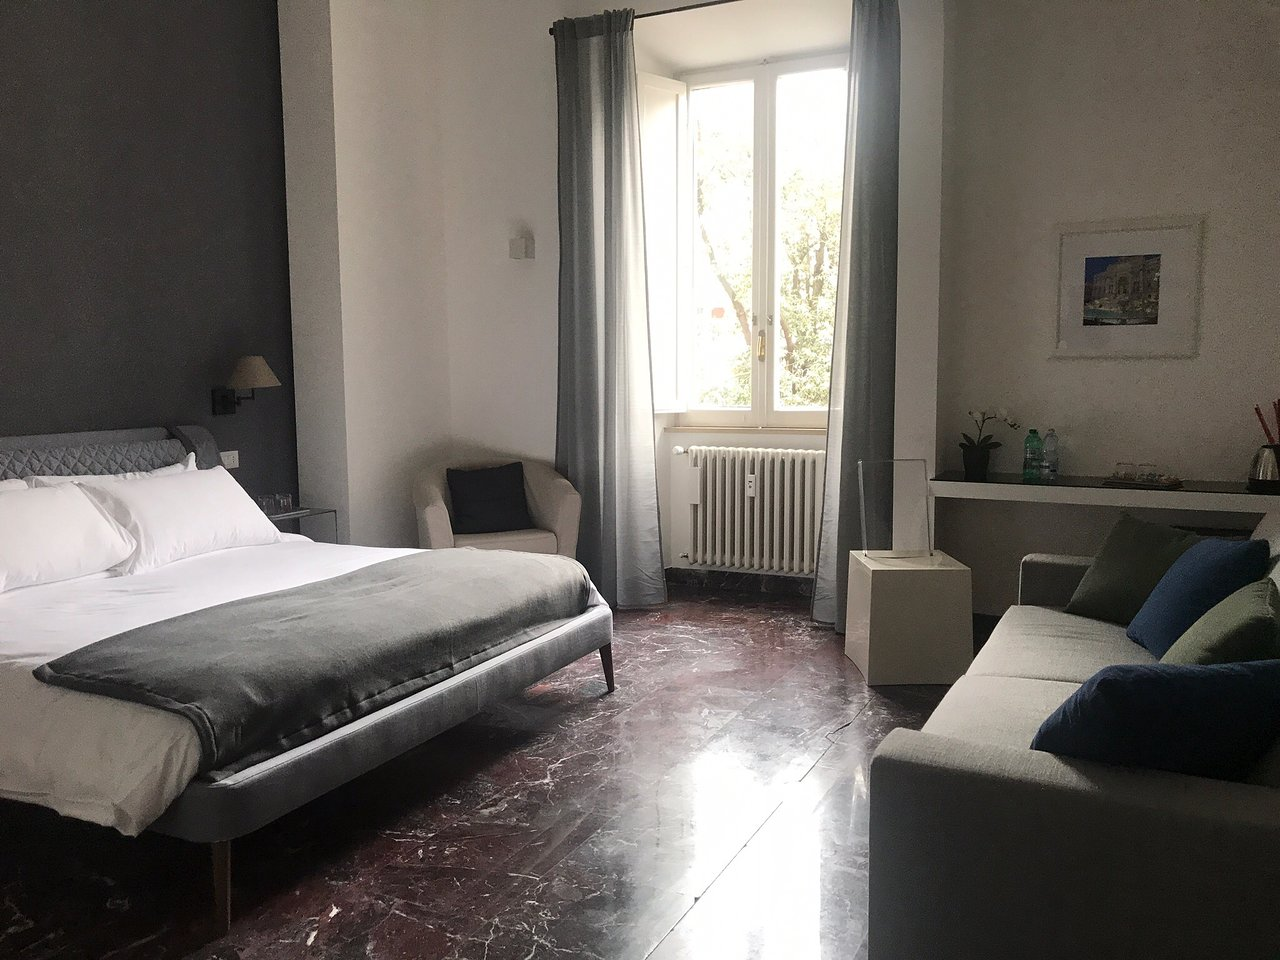 Lombardia40 Luxury Suites Prices Hotel Reviews Rome